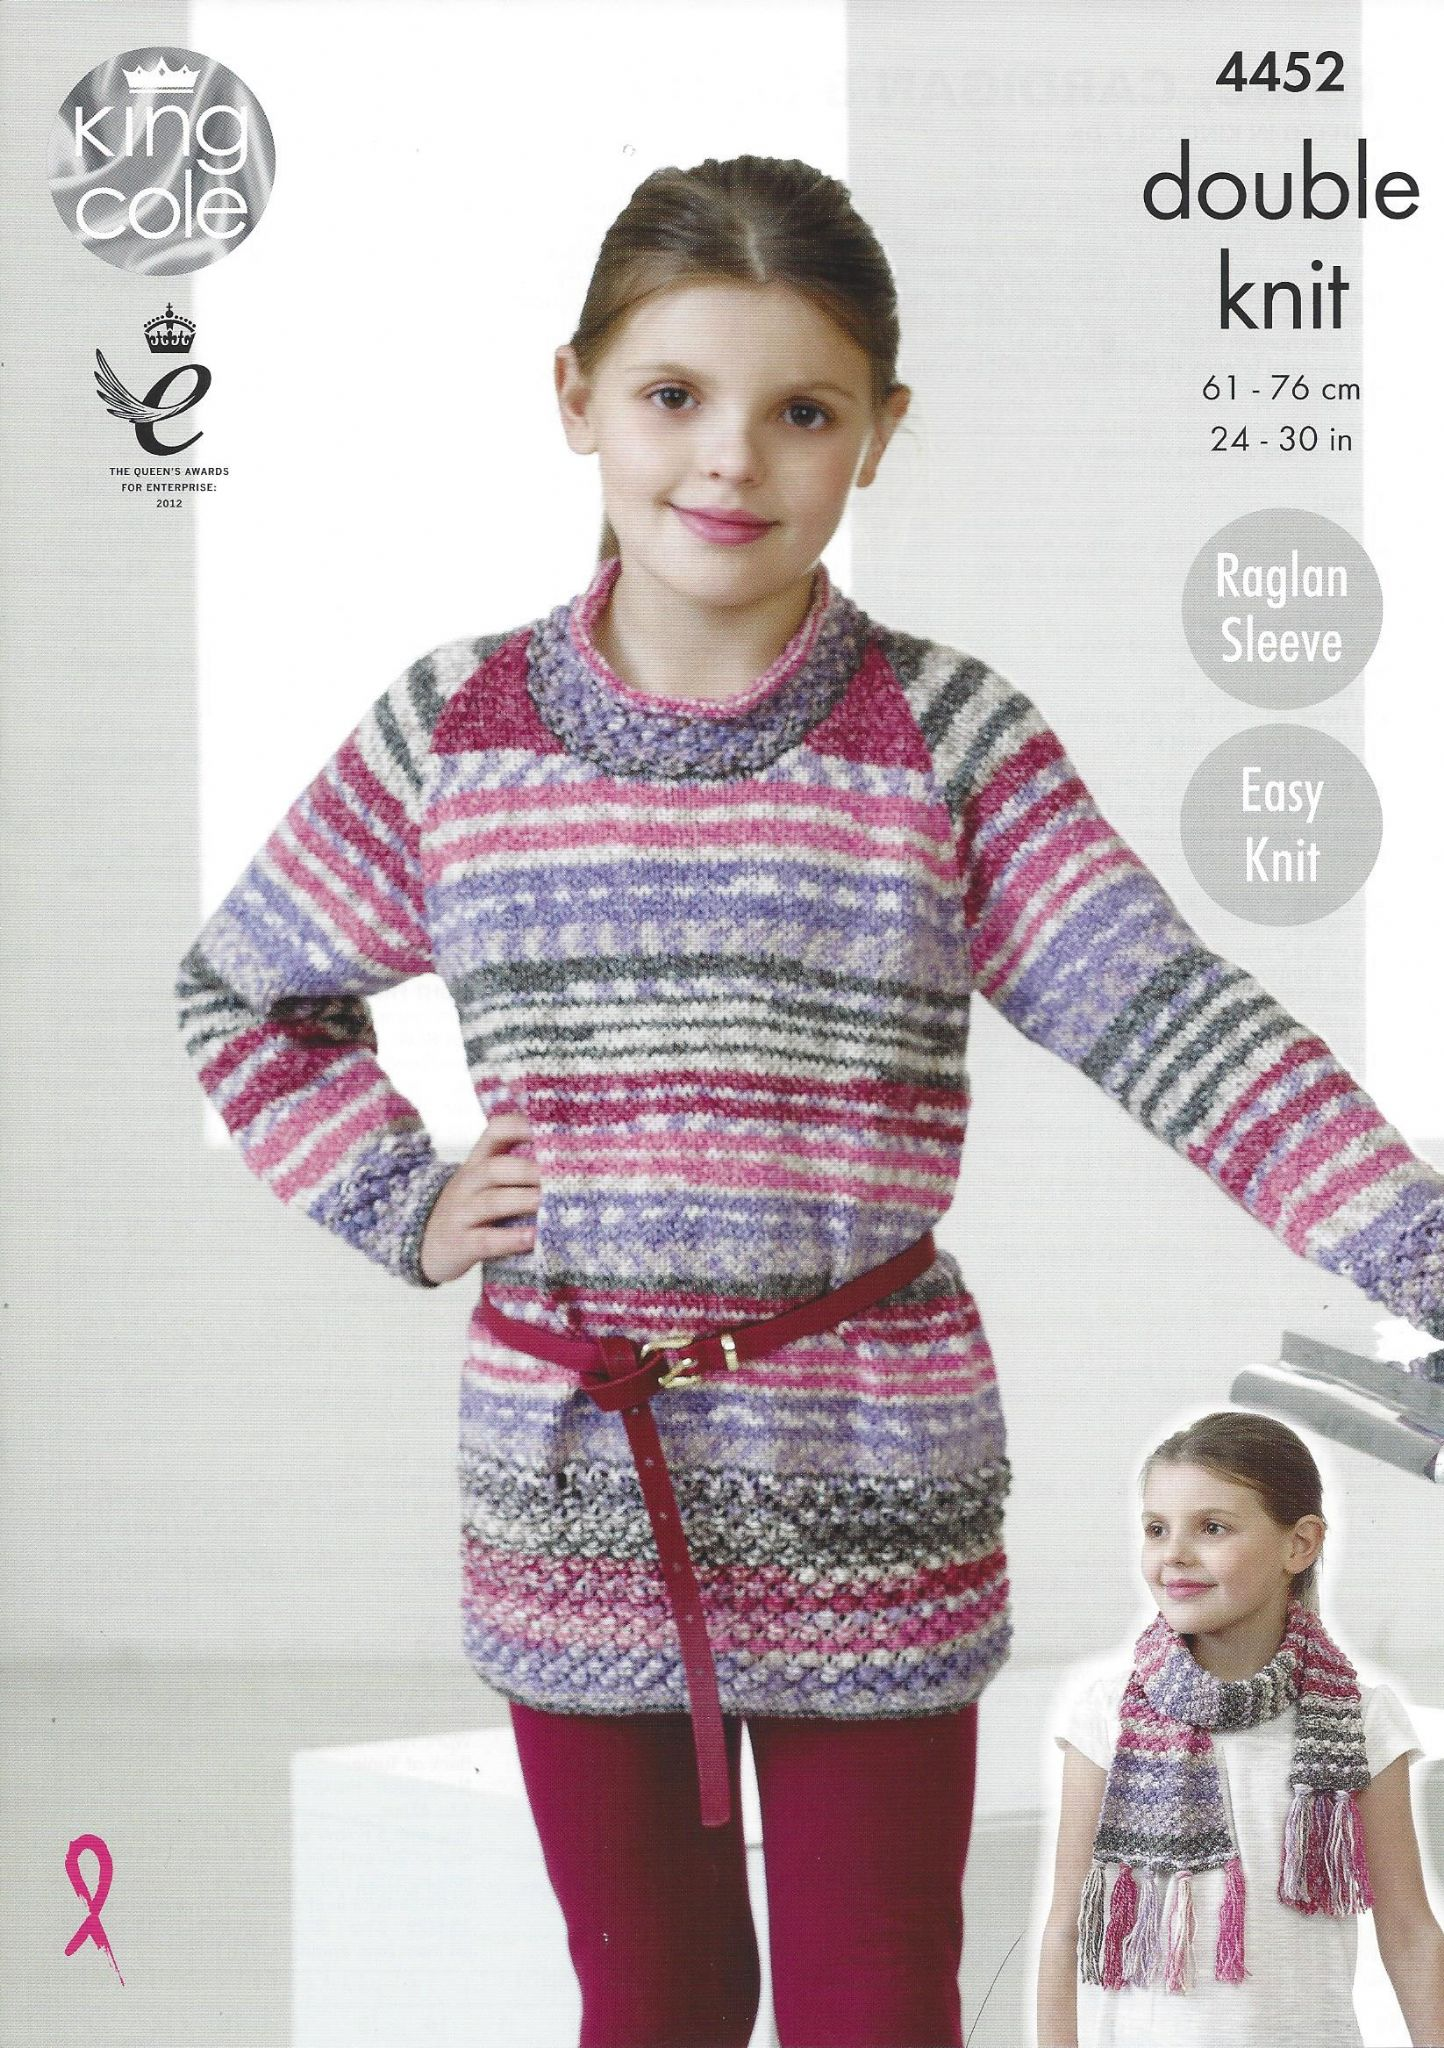 King Cole Drifter DK - 4452 Tunic Cardigan & Scarf Knitting Pattern